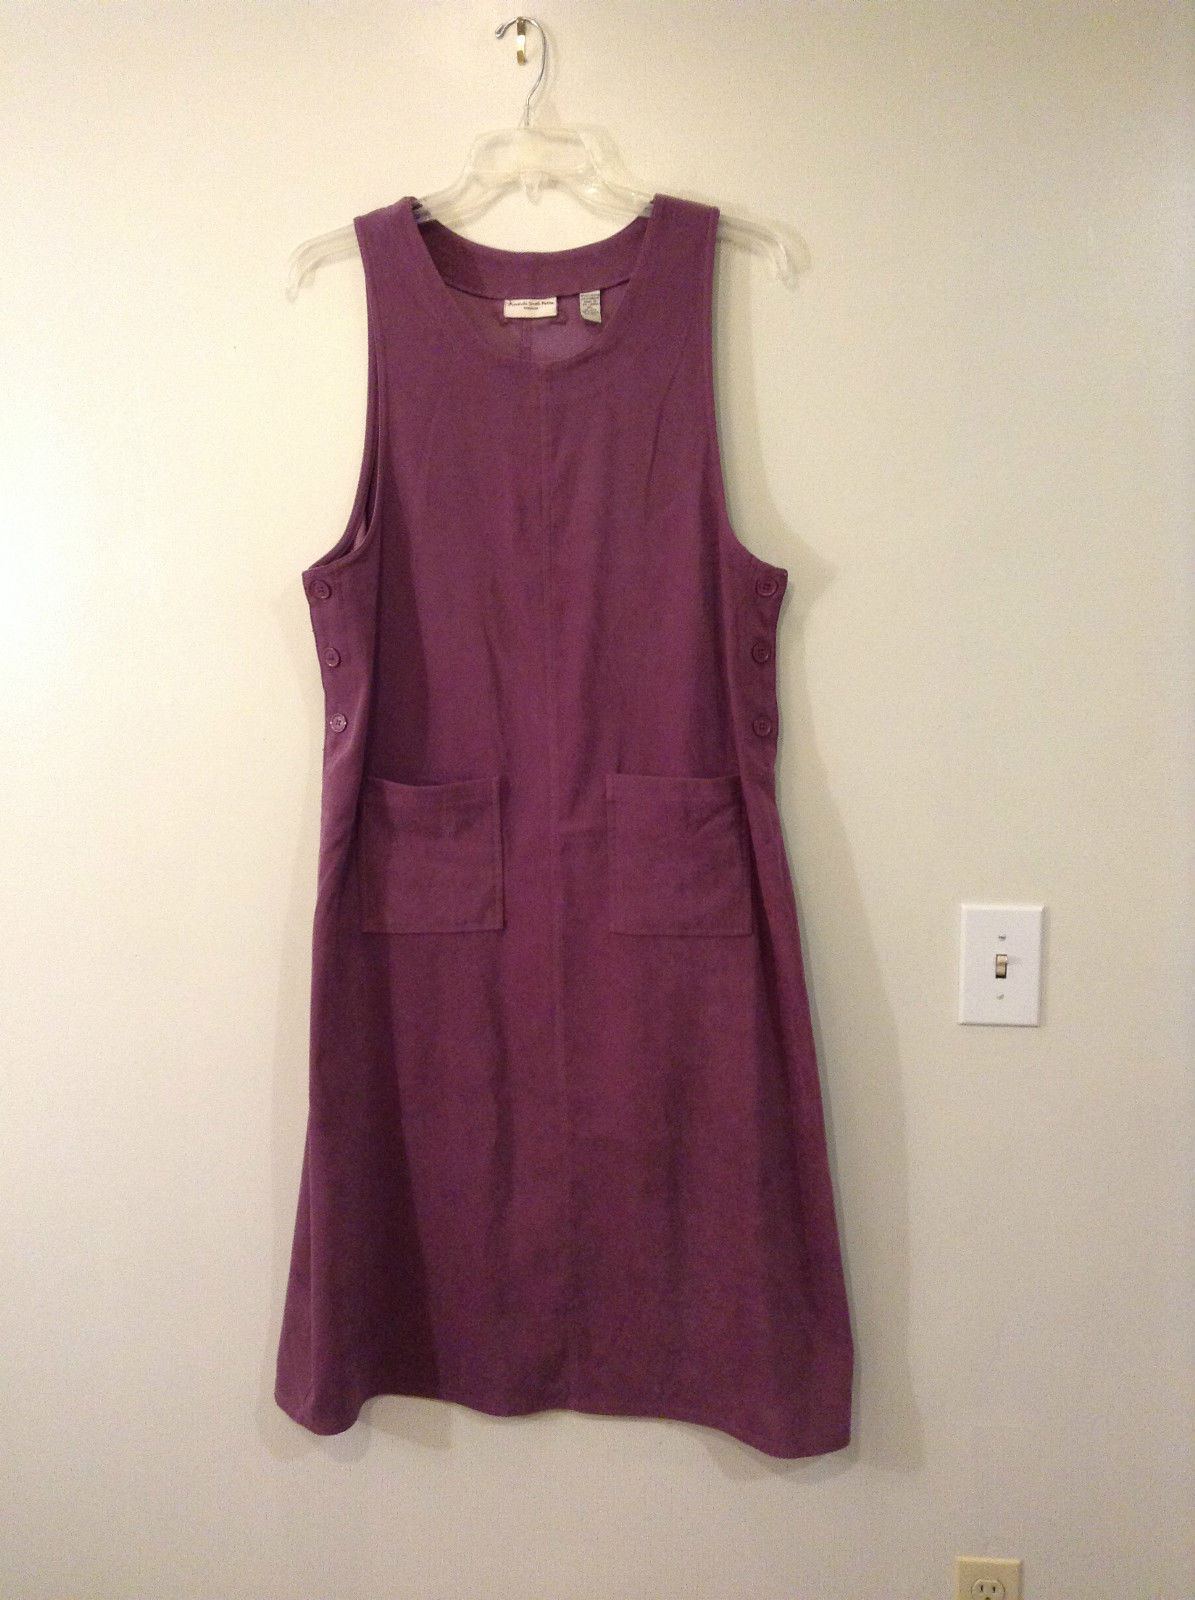 Amanda Smith Petite Sleeveless Dress Size PL Violet Pink Hue Buttons on Sides